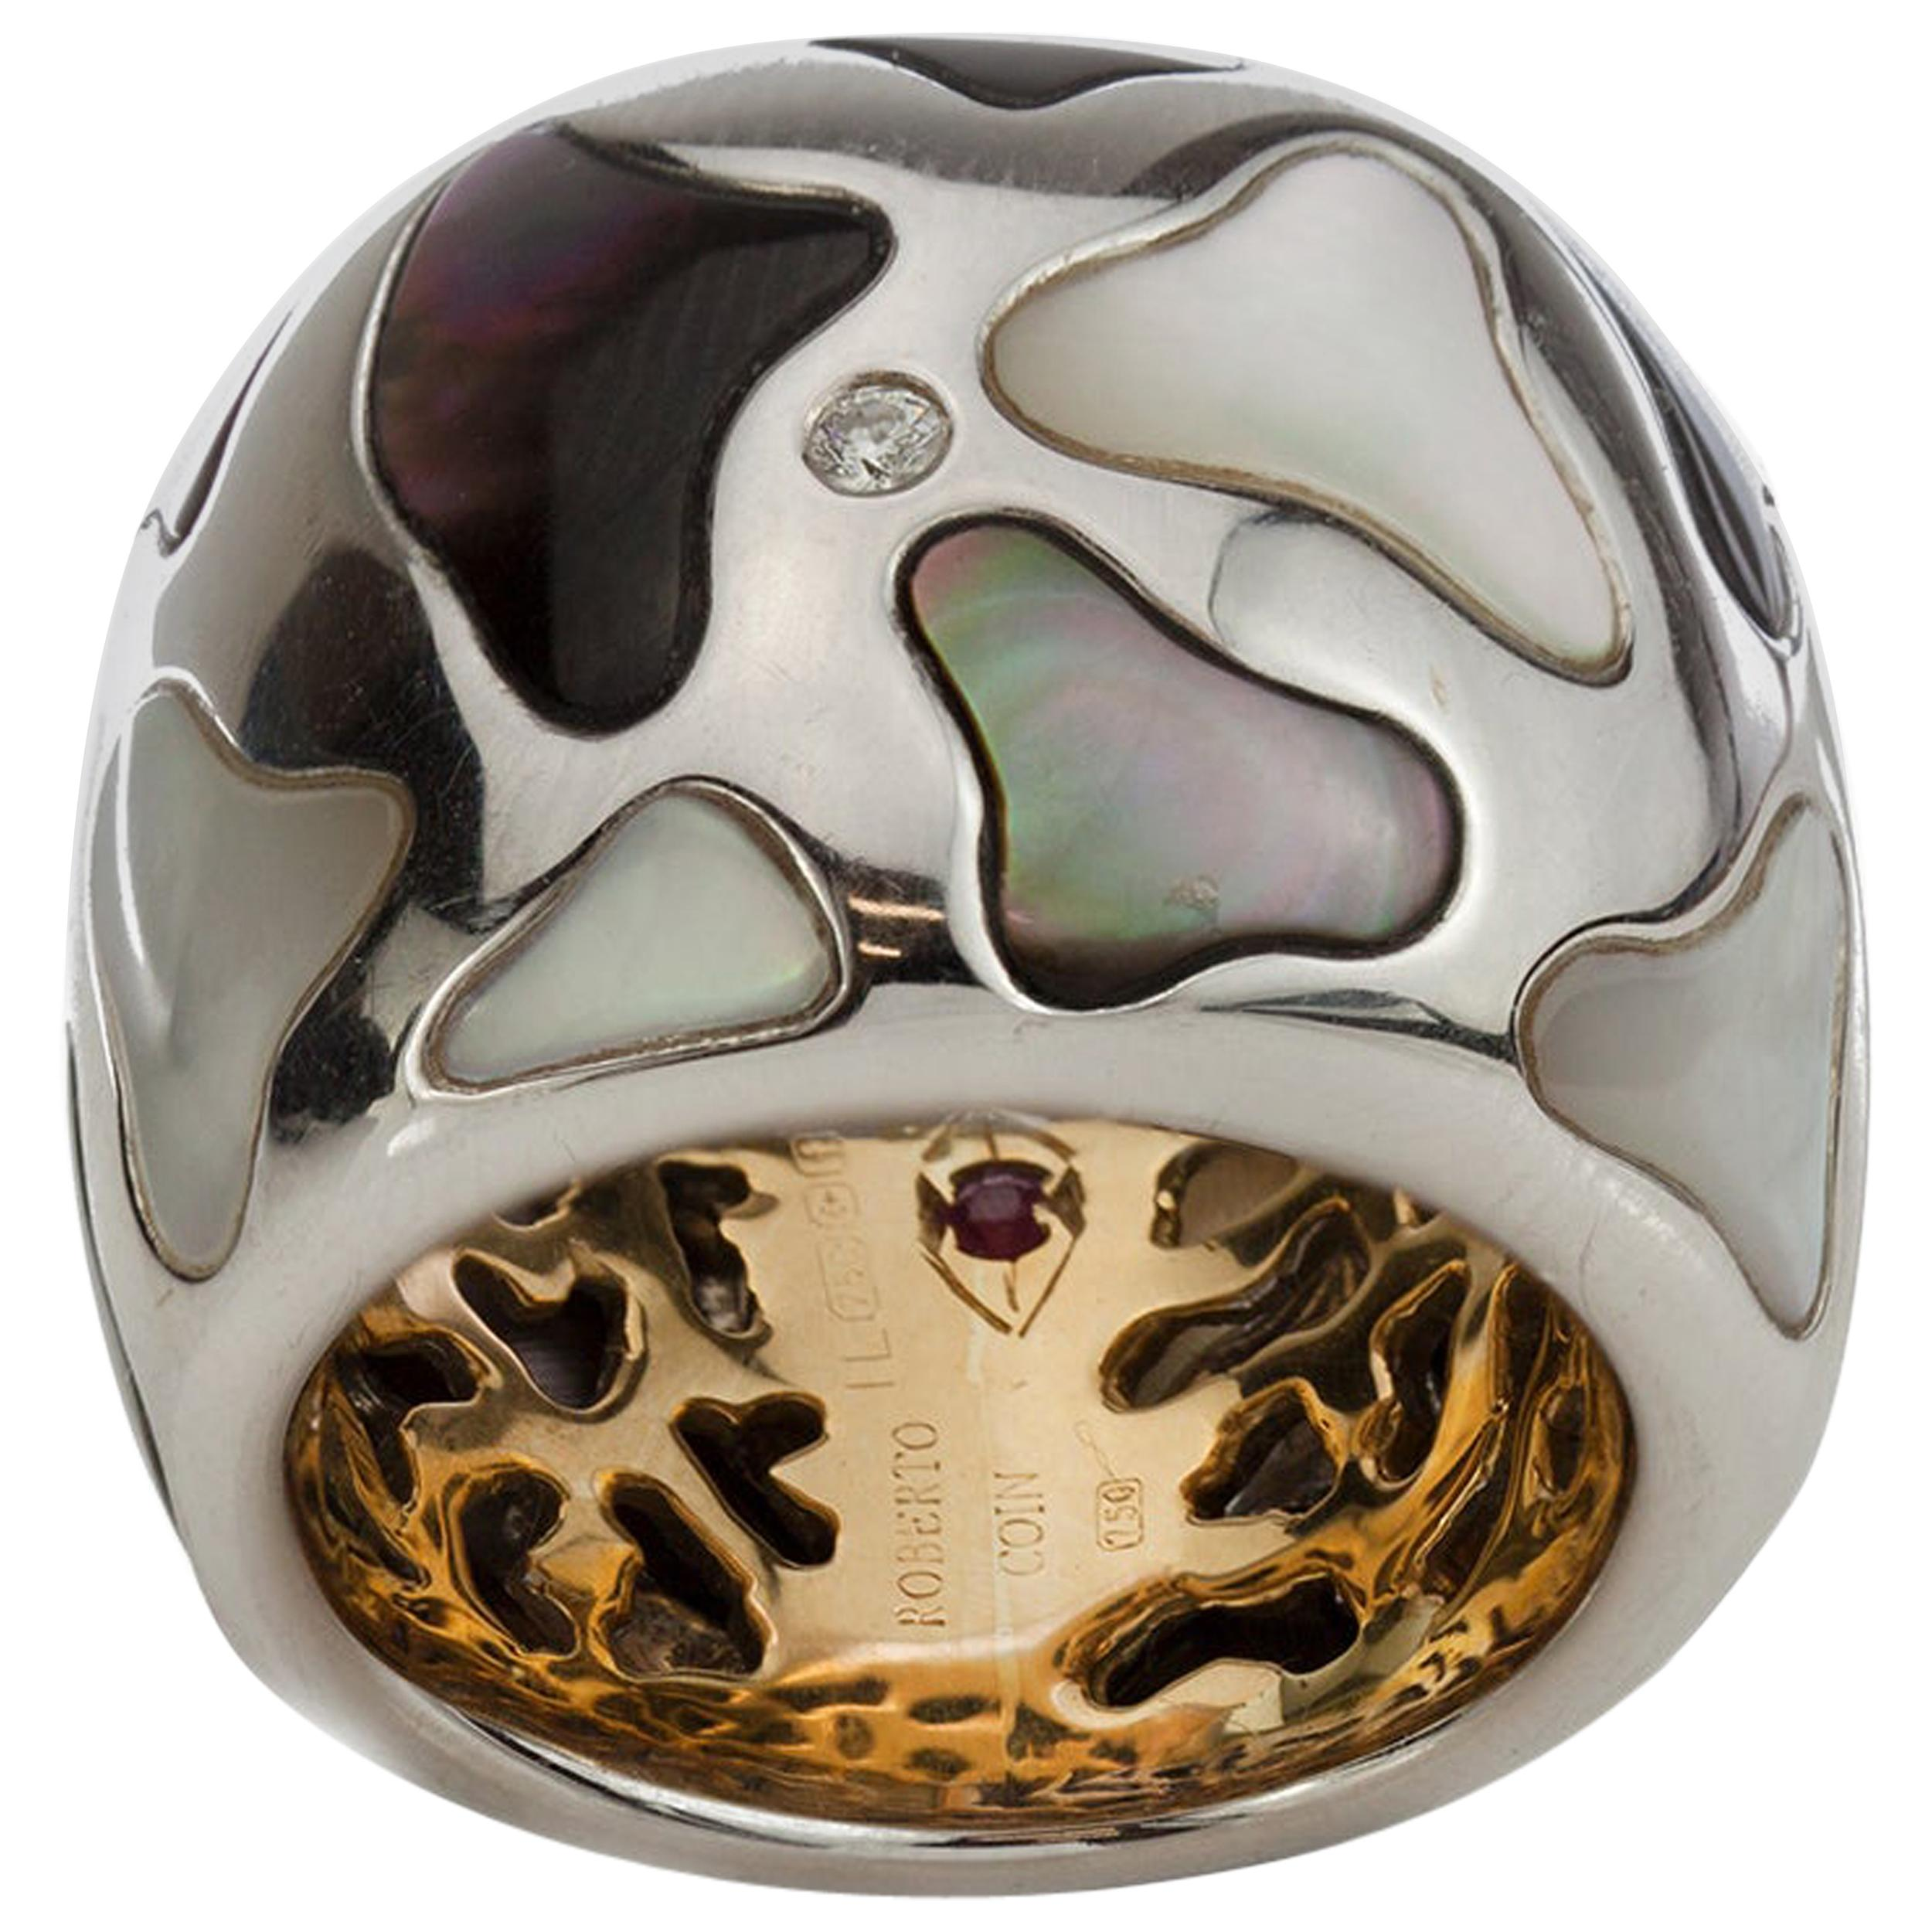 Roberto Coin Panda 18 Karat White and Yellow Gold Onyx and Mother of Pearl Ring